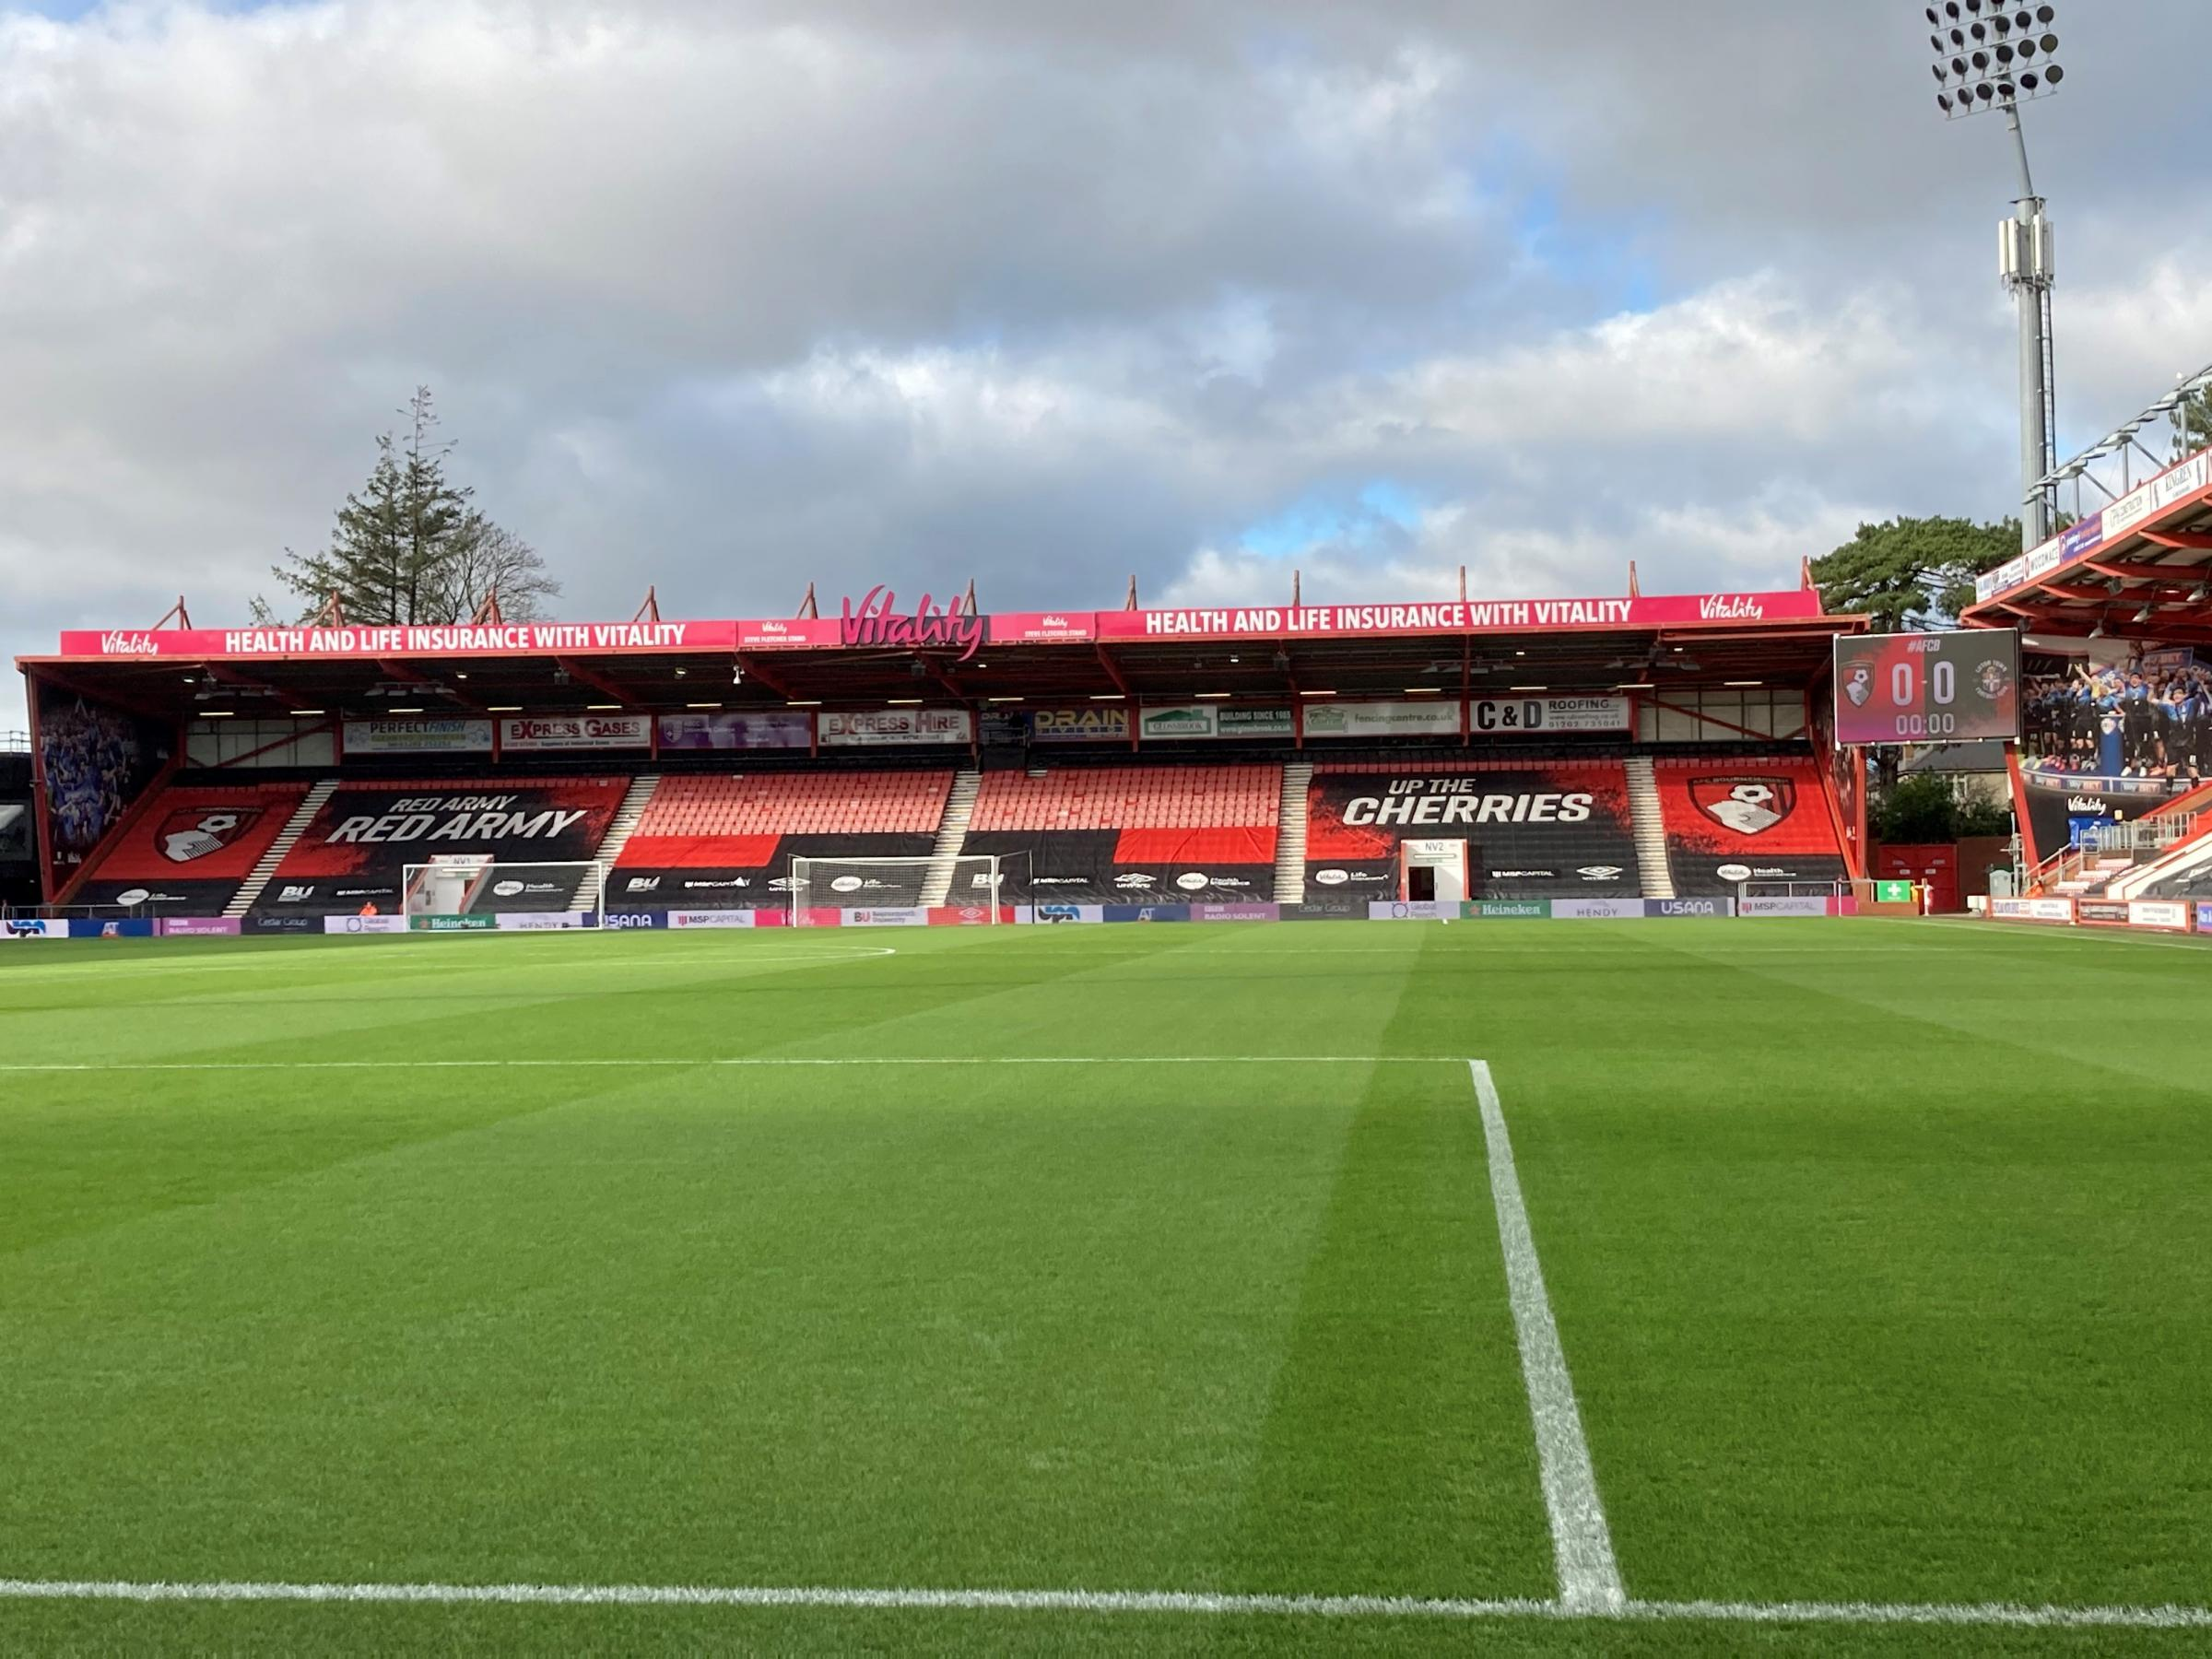 Championship: AFC Bournemouth v Luton - as it happened